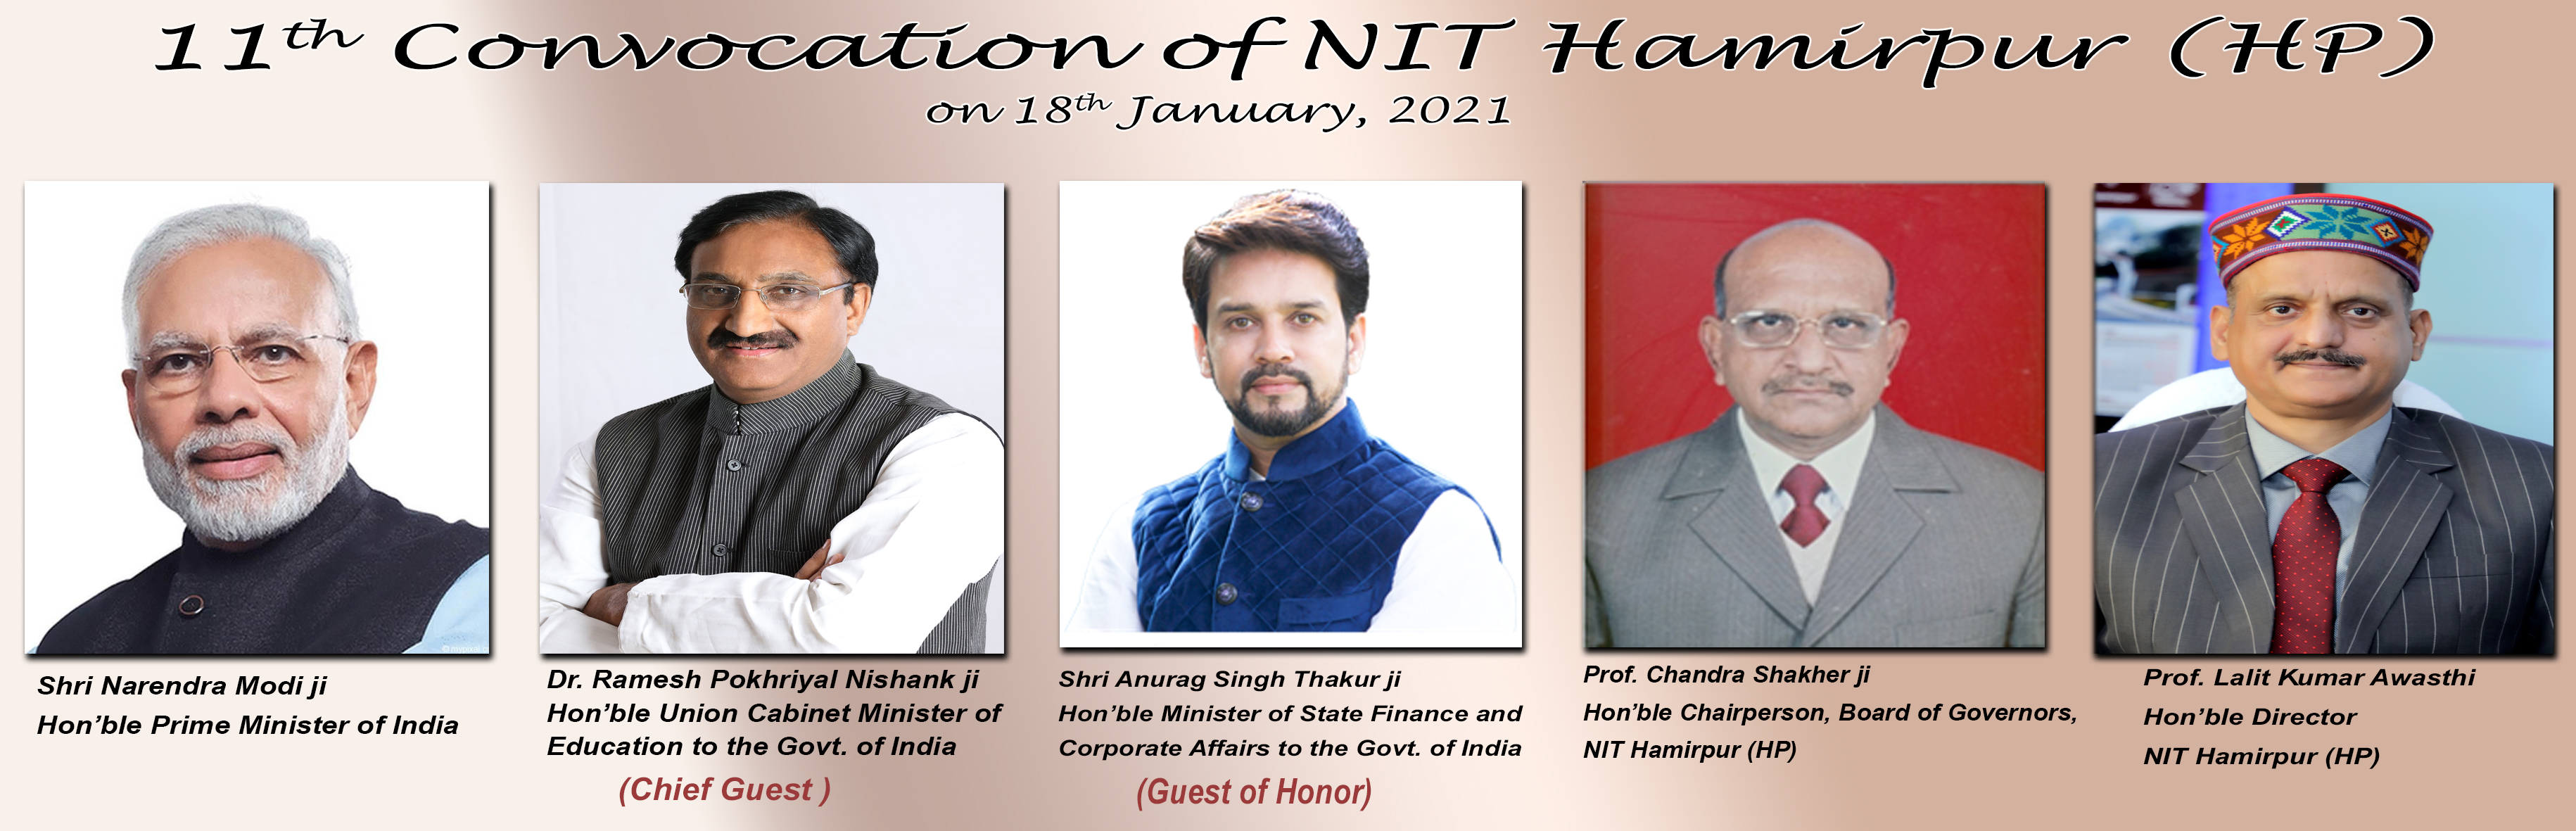 11th Convocation NIT Hamirpur